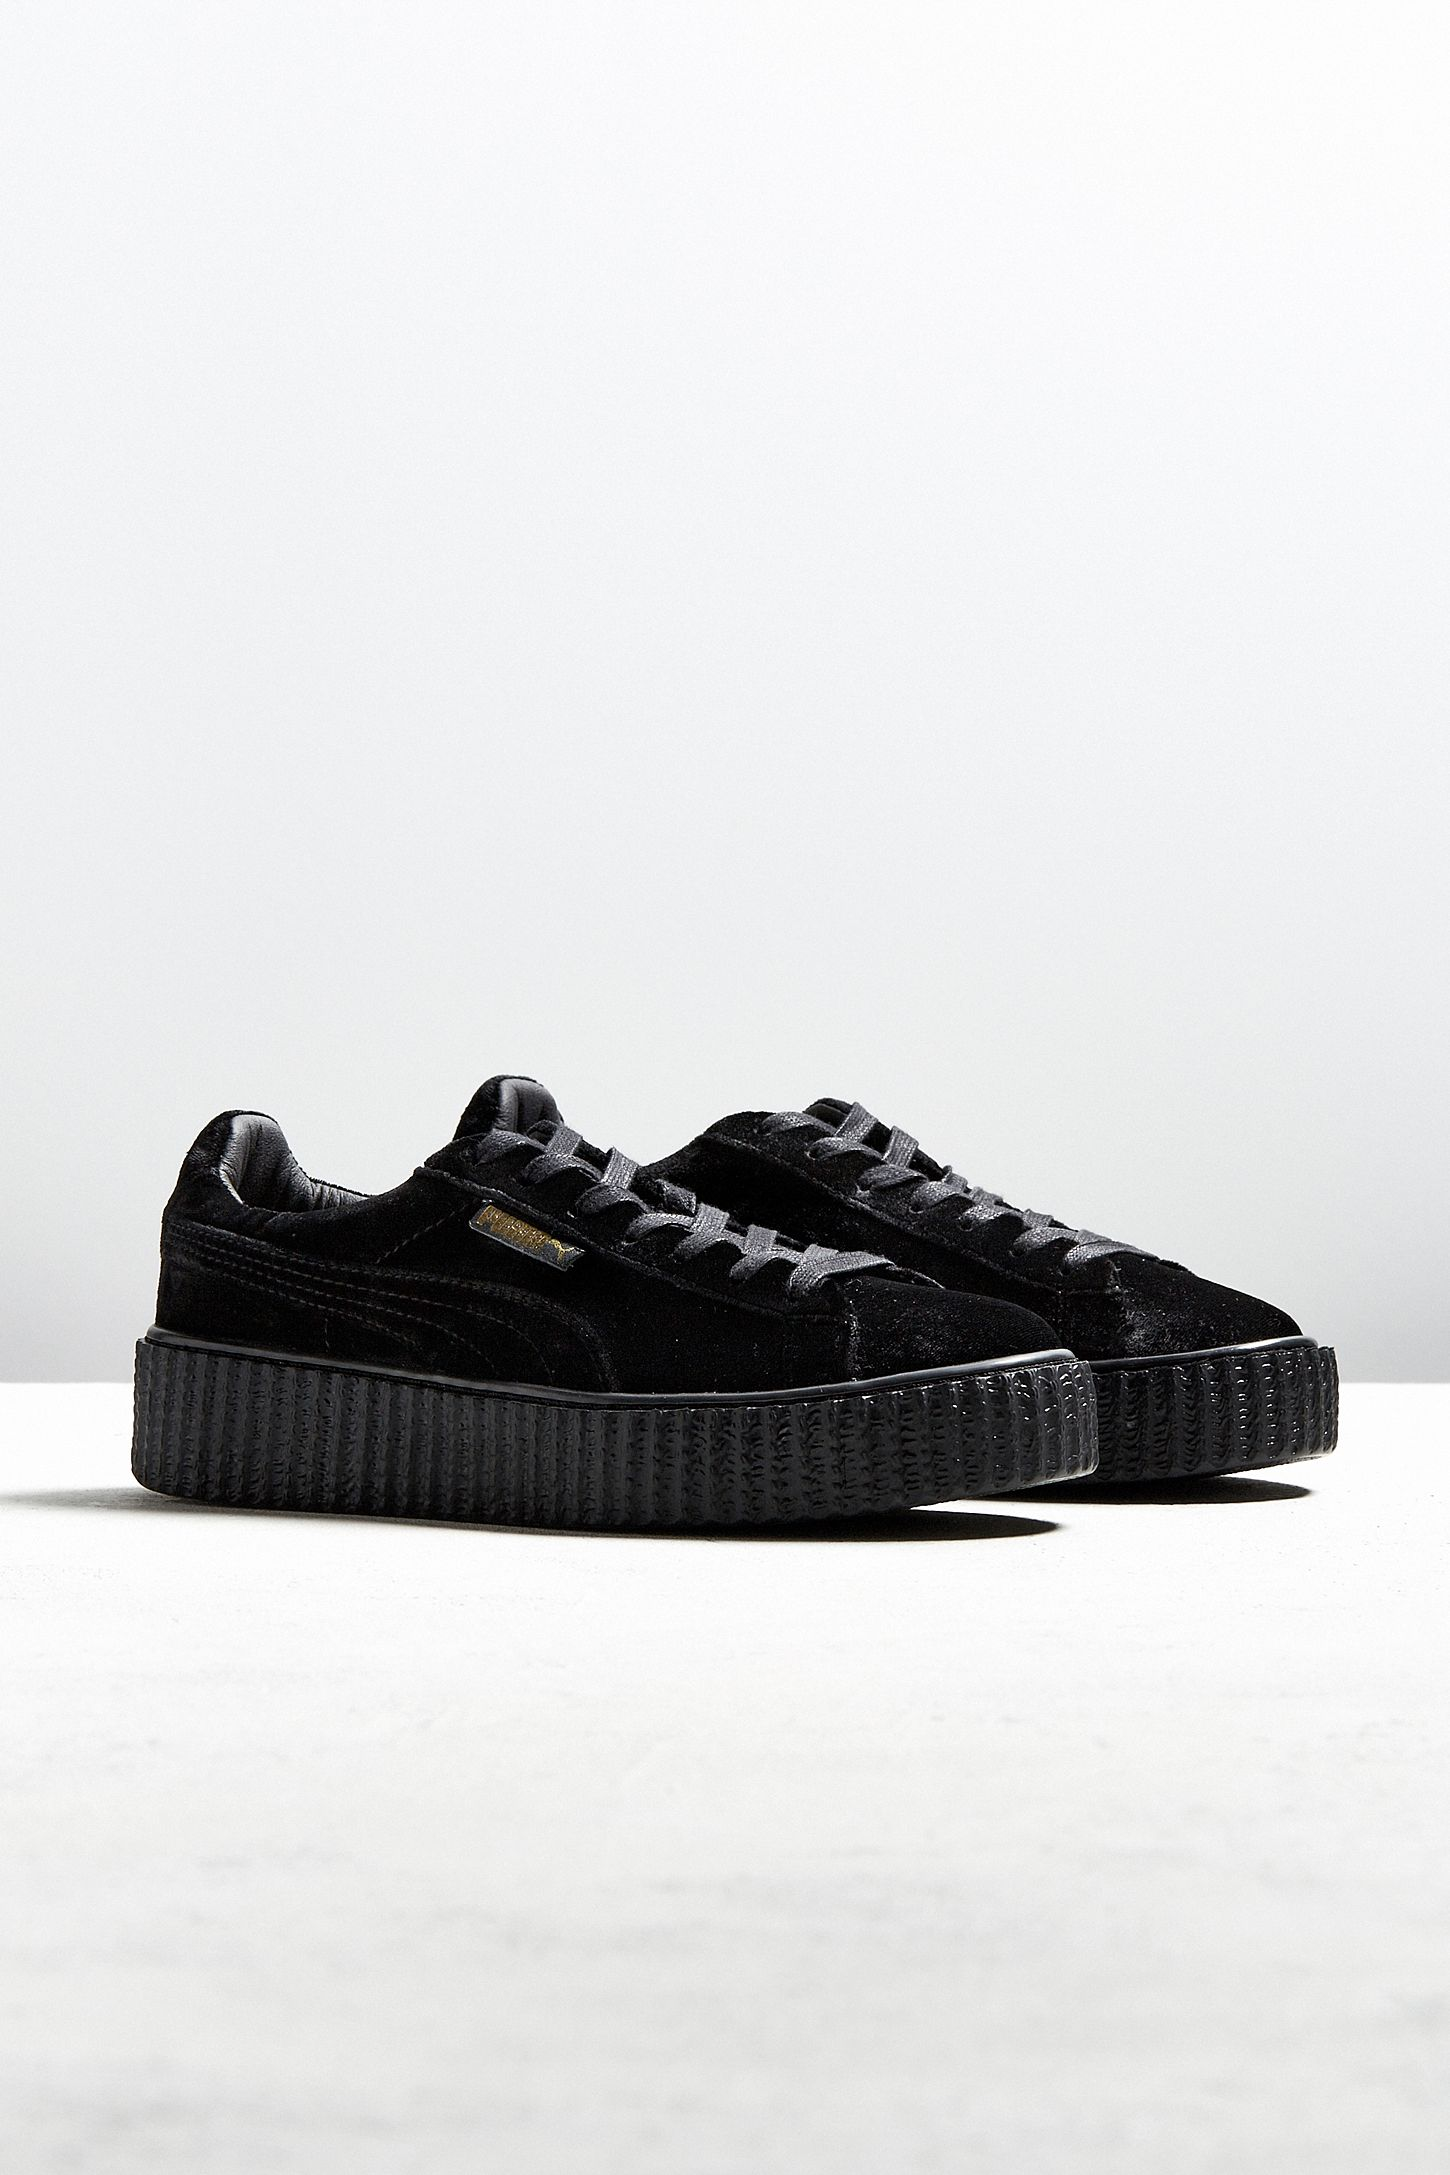 Puma Fenty by Rihanna Women s Velvet Creeper Sneaker  cd4f8d2b7